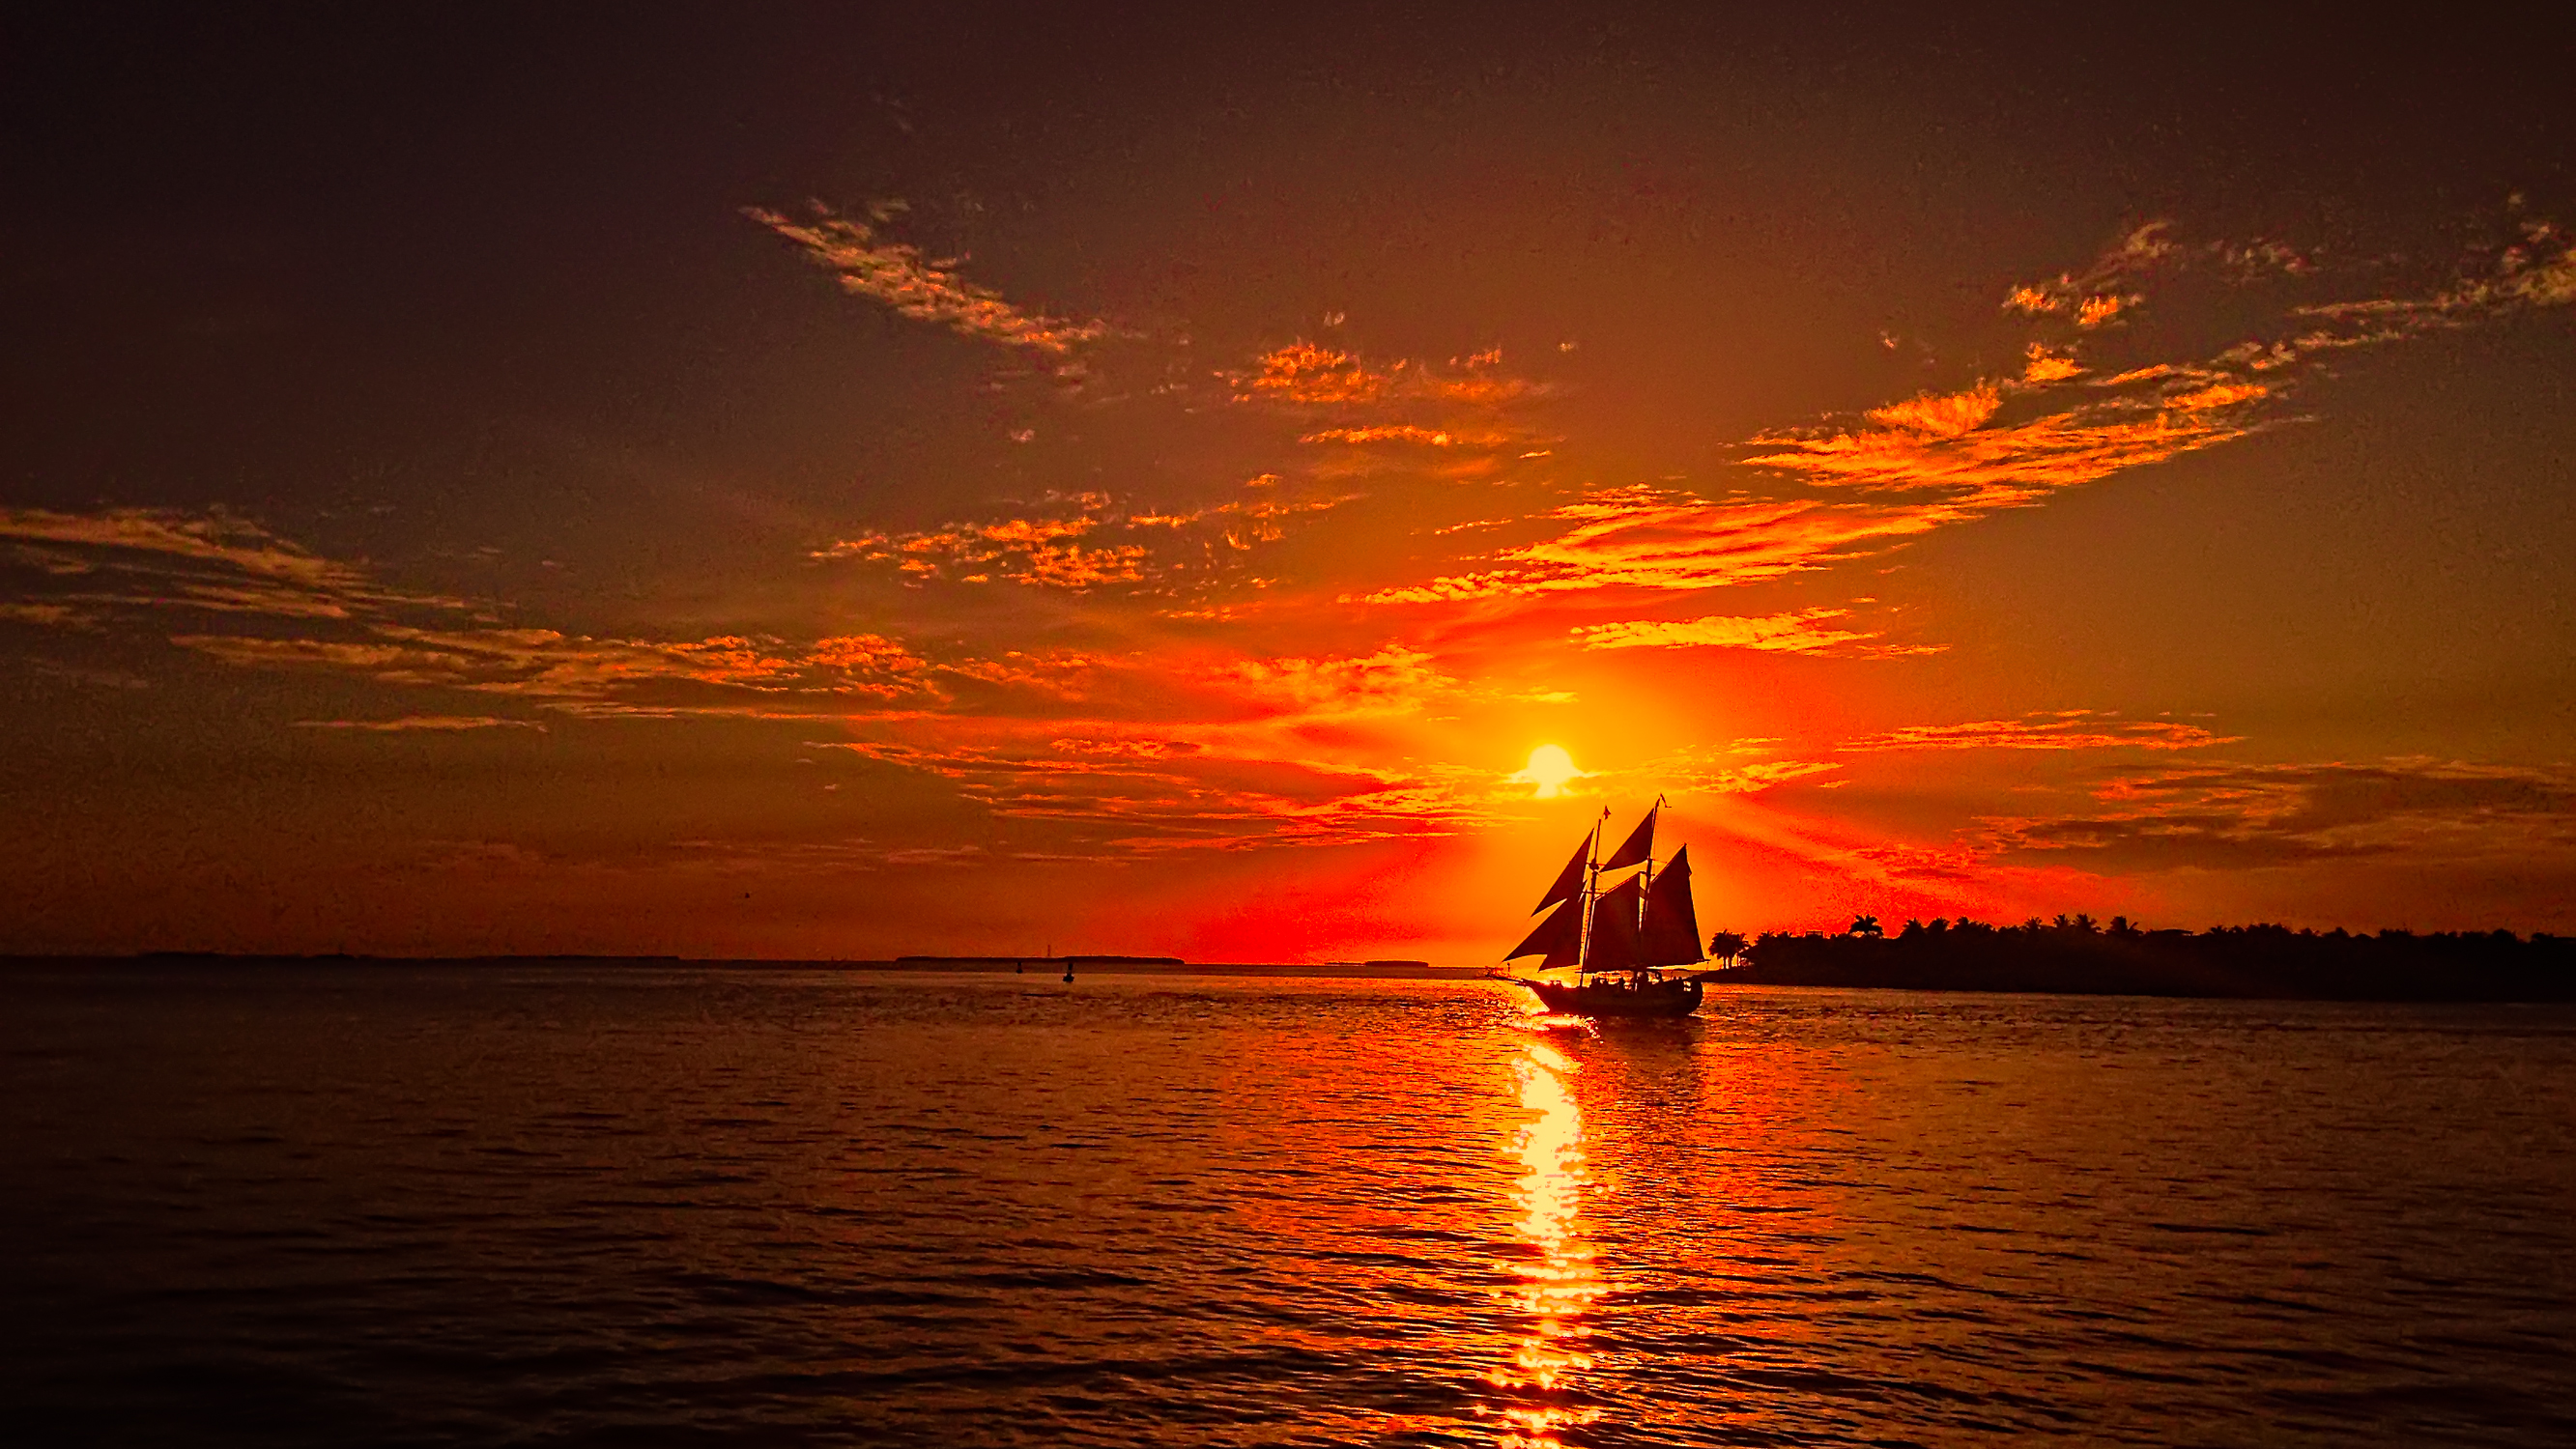 Sailing At Sunset Full HD Wallpaper And Background